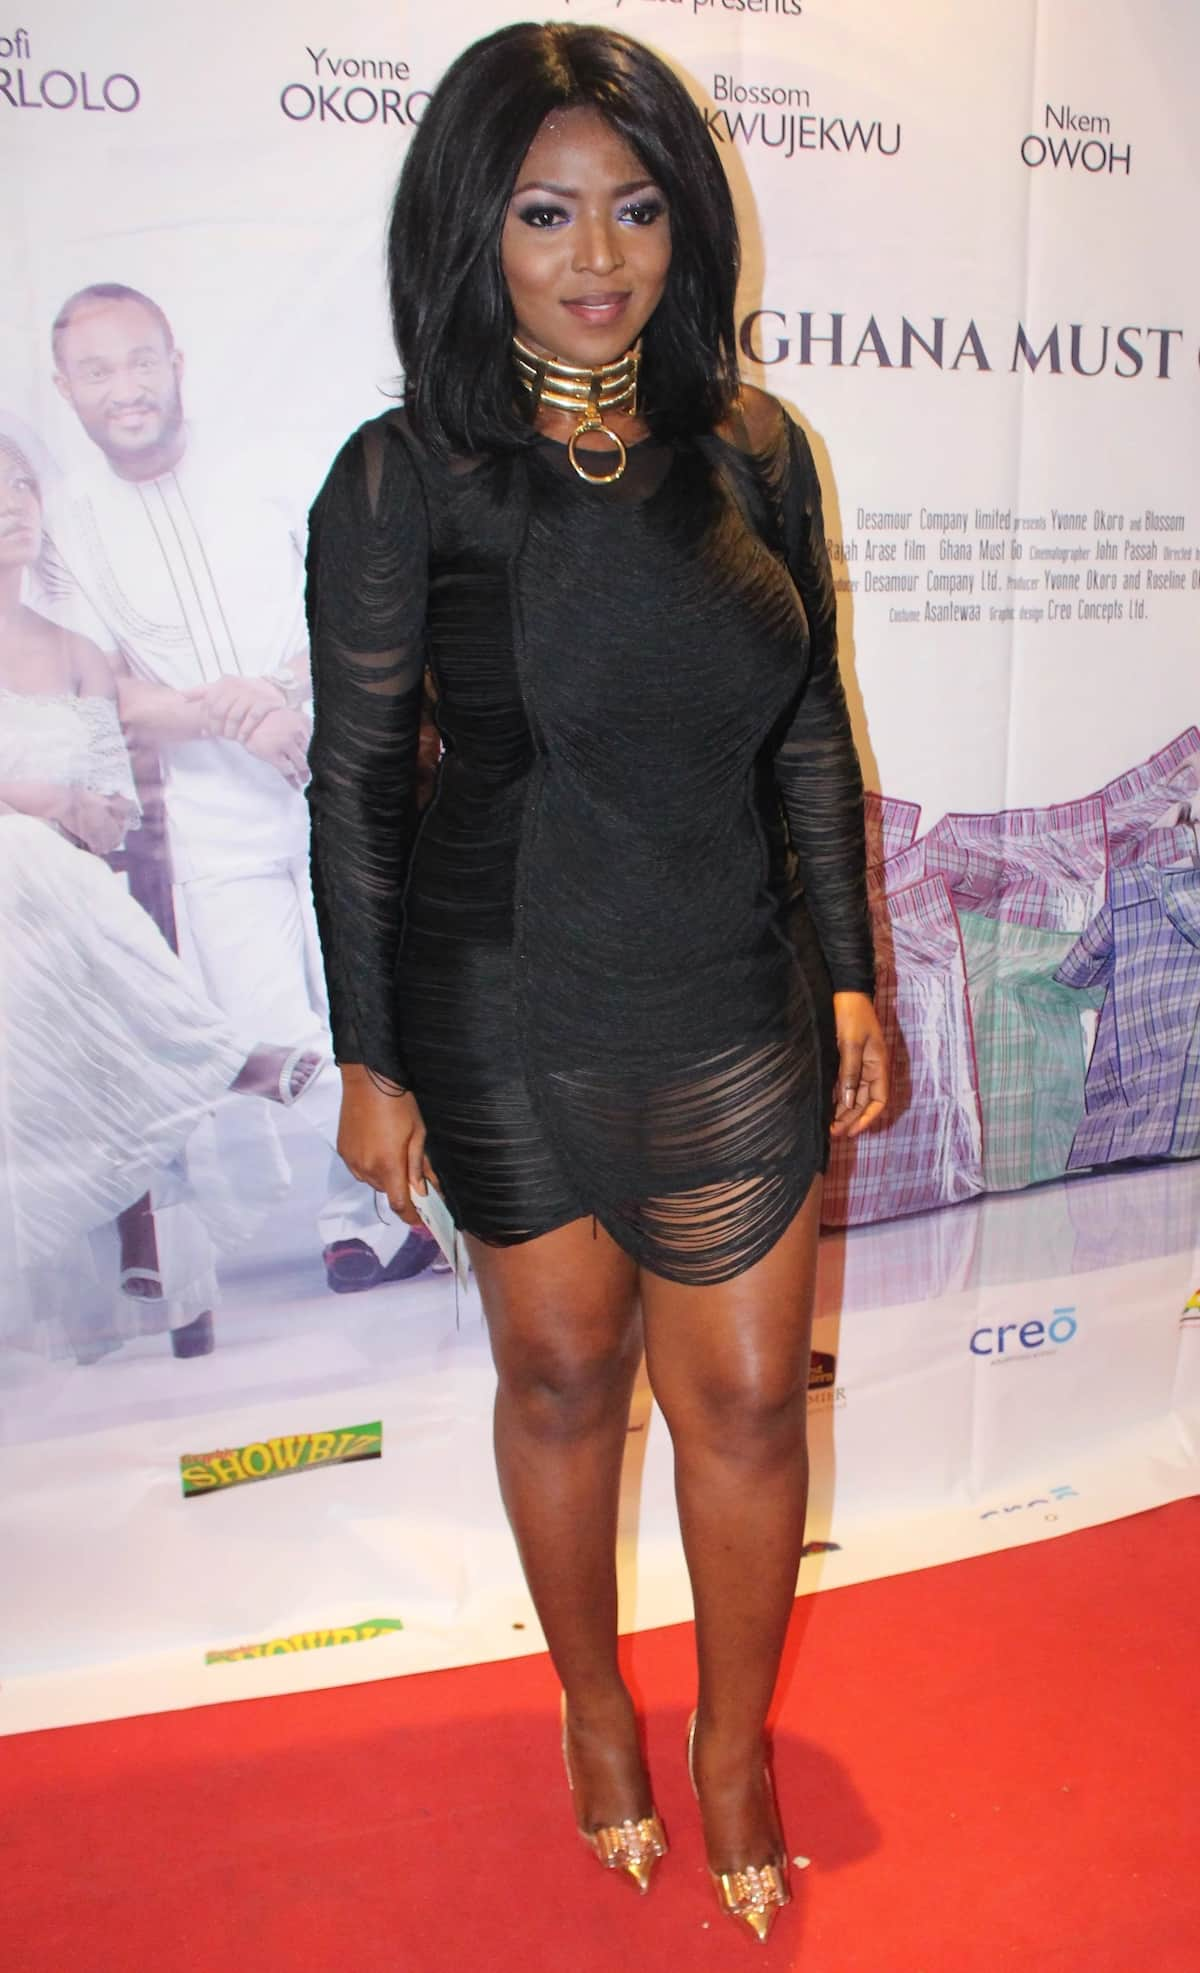 Yvonne Okoro stands on the red carpet wearing a black dress